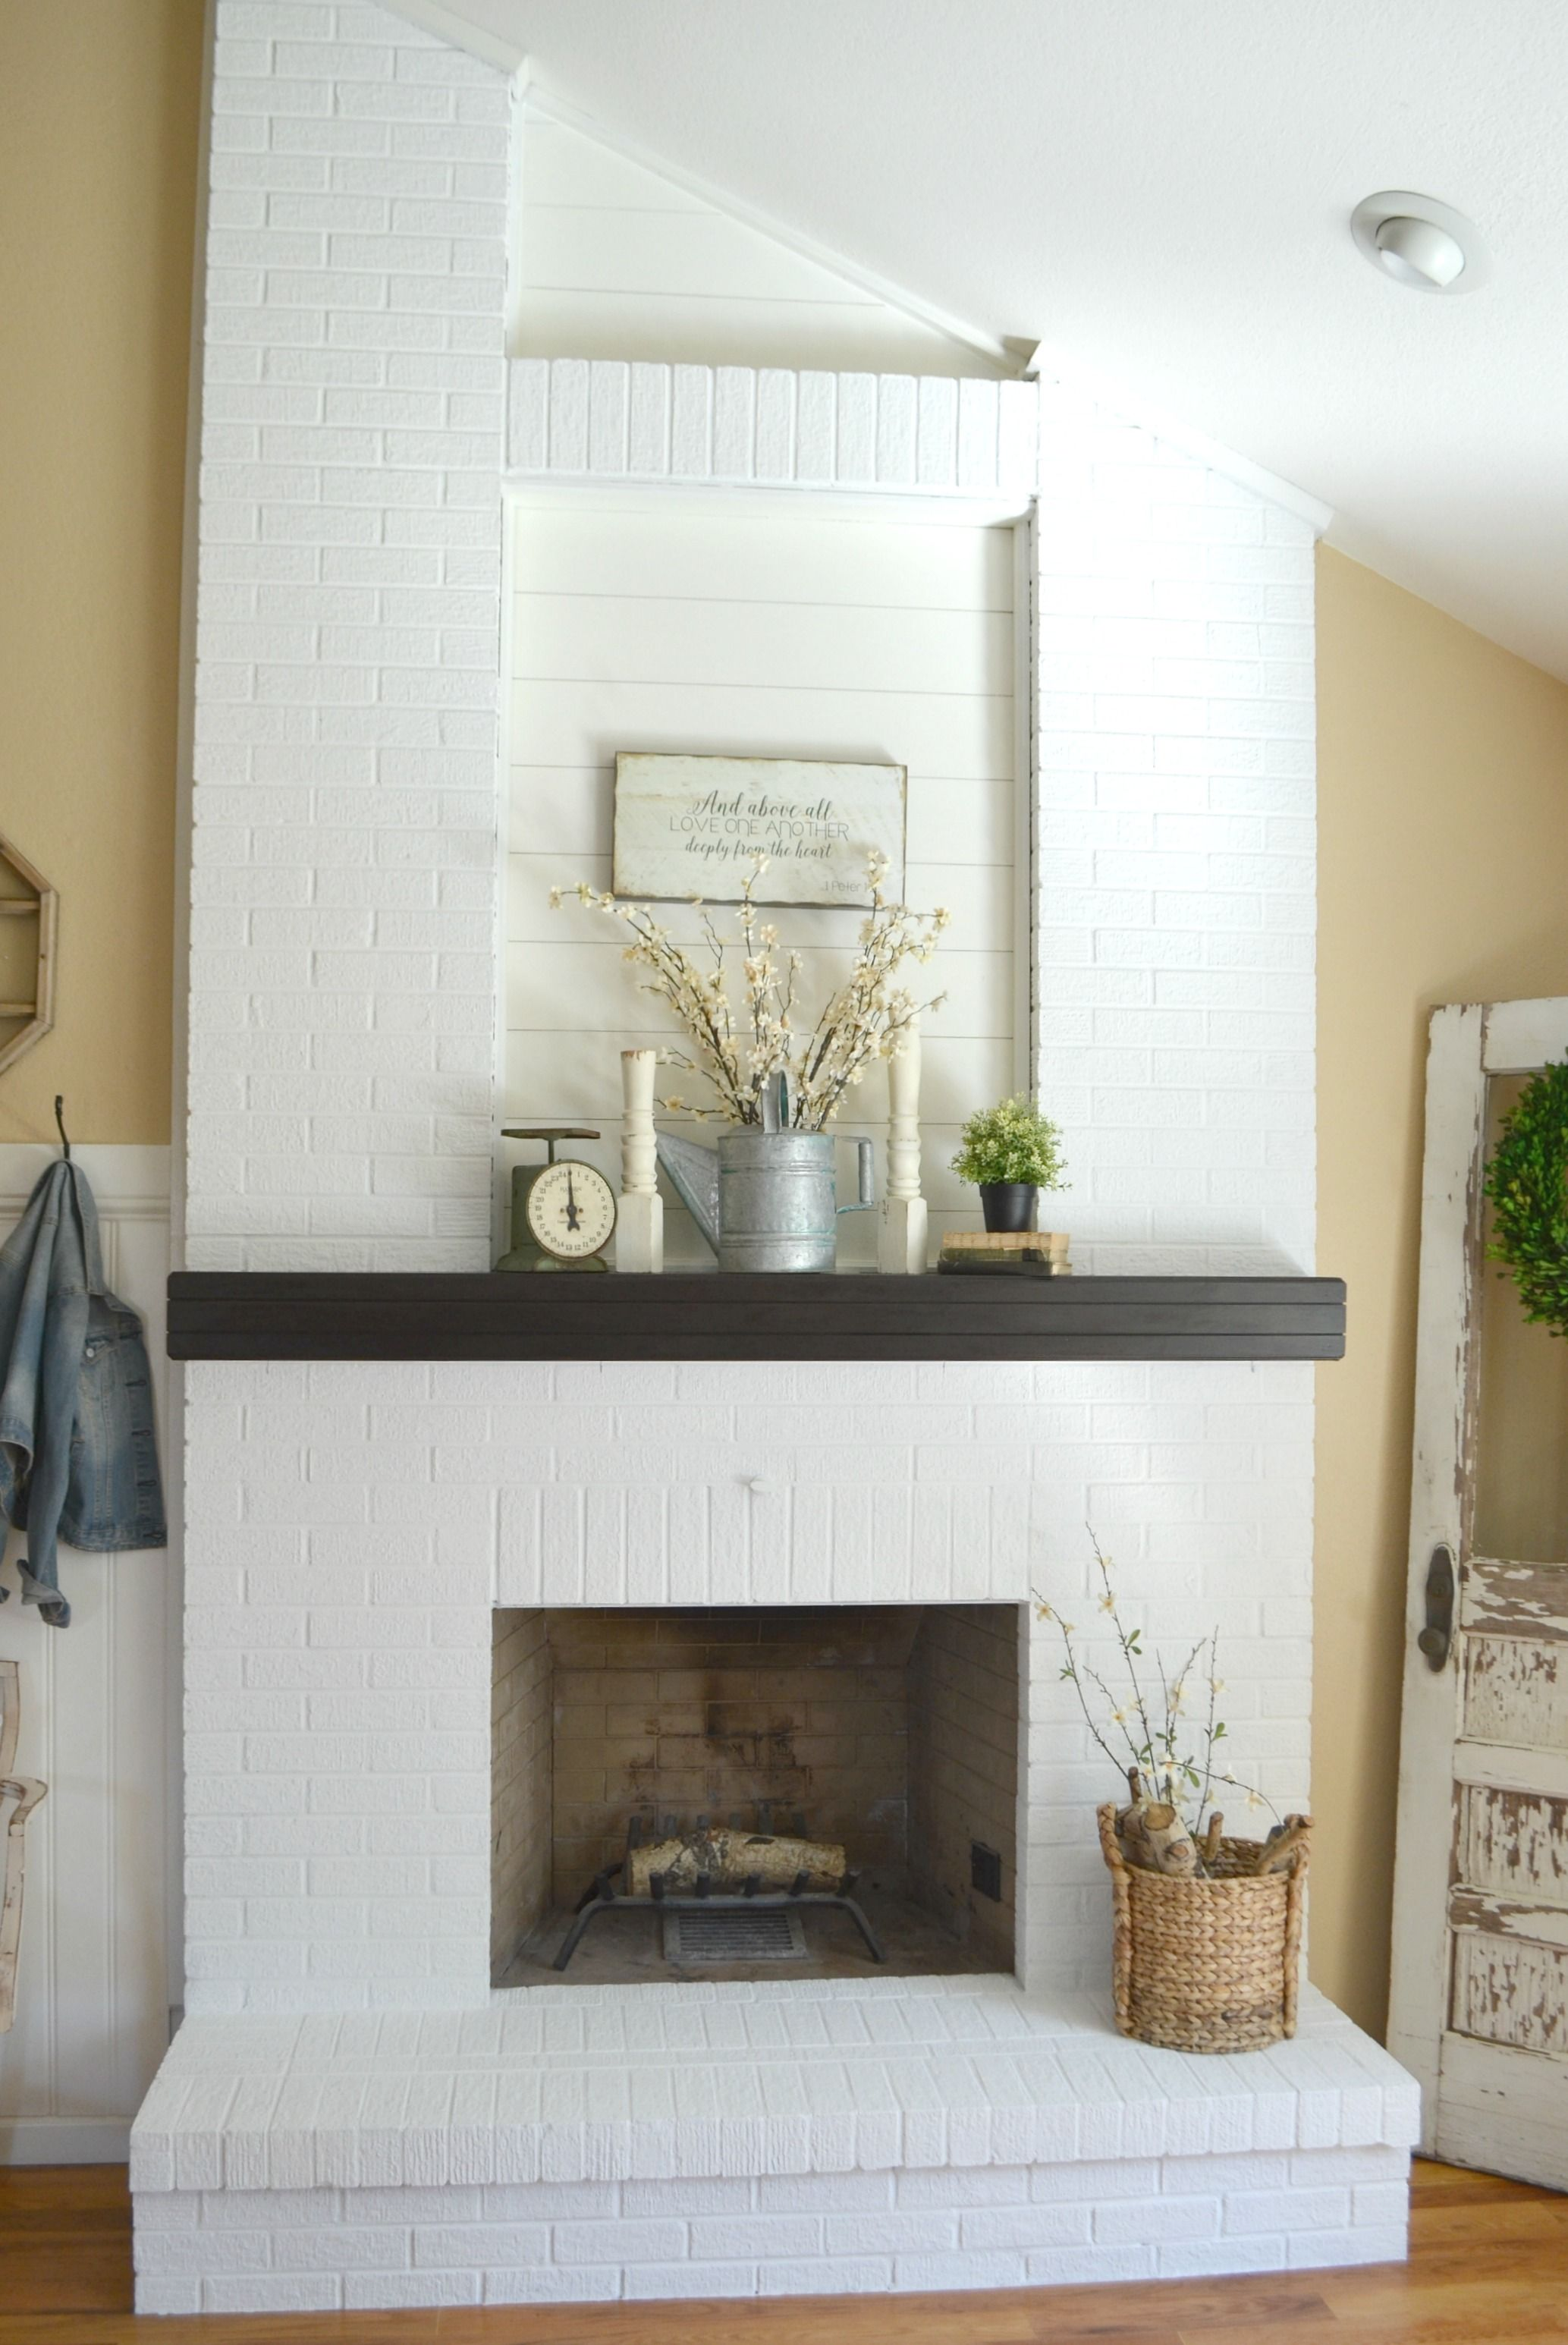 How to Paint a Brick Fireplace | Brick fireplace, Bricks and Living ...